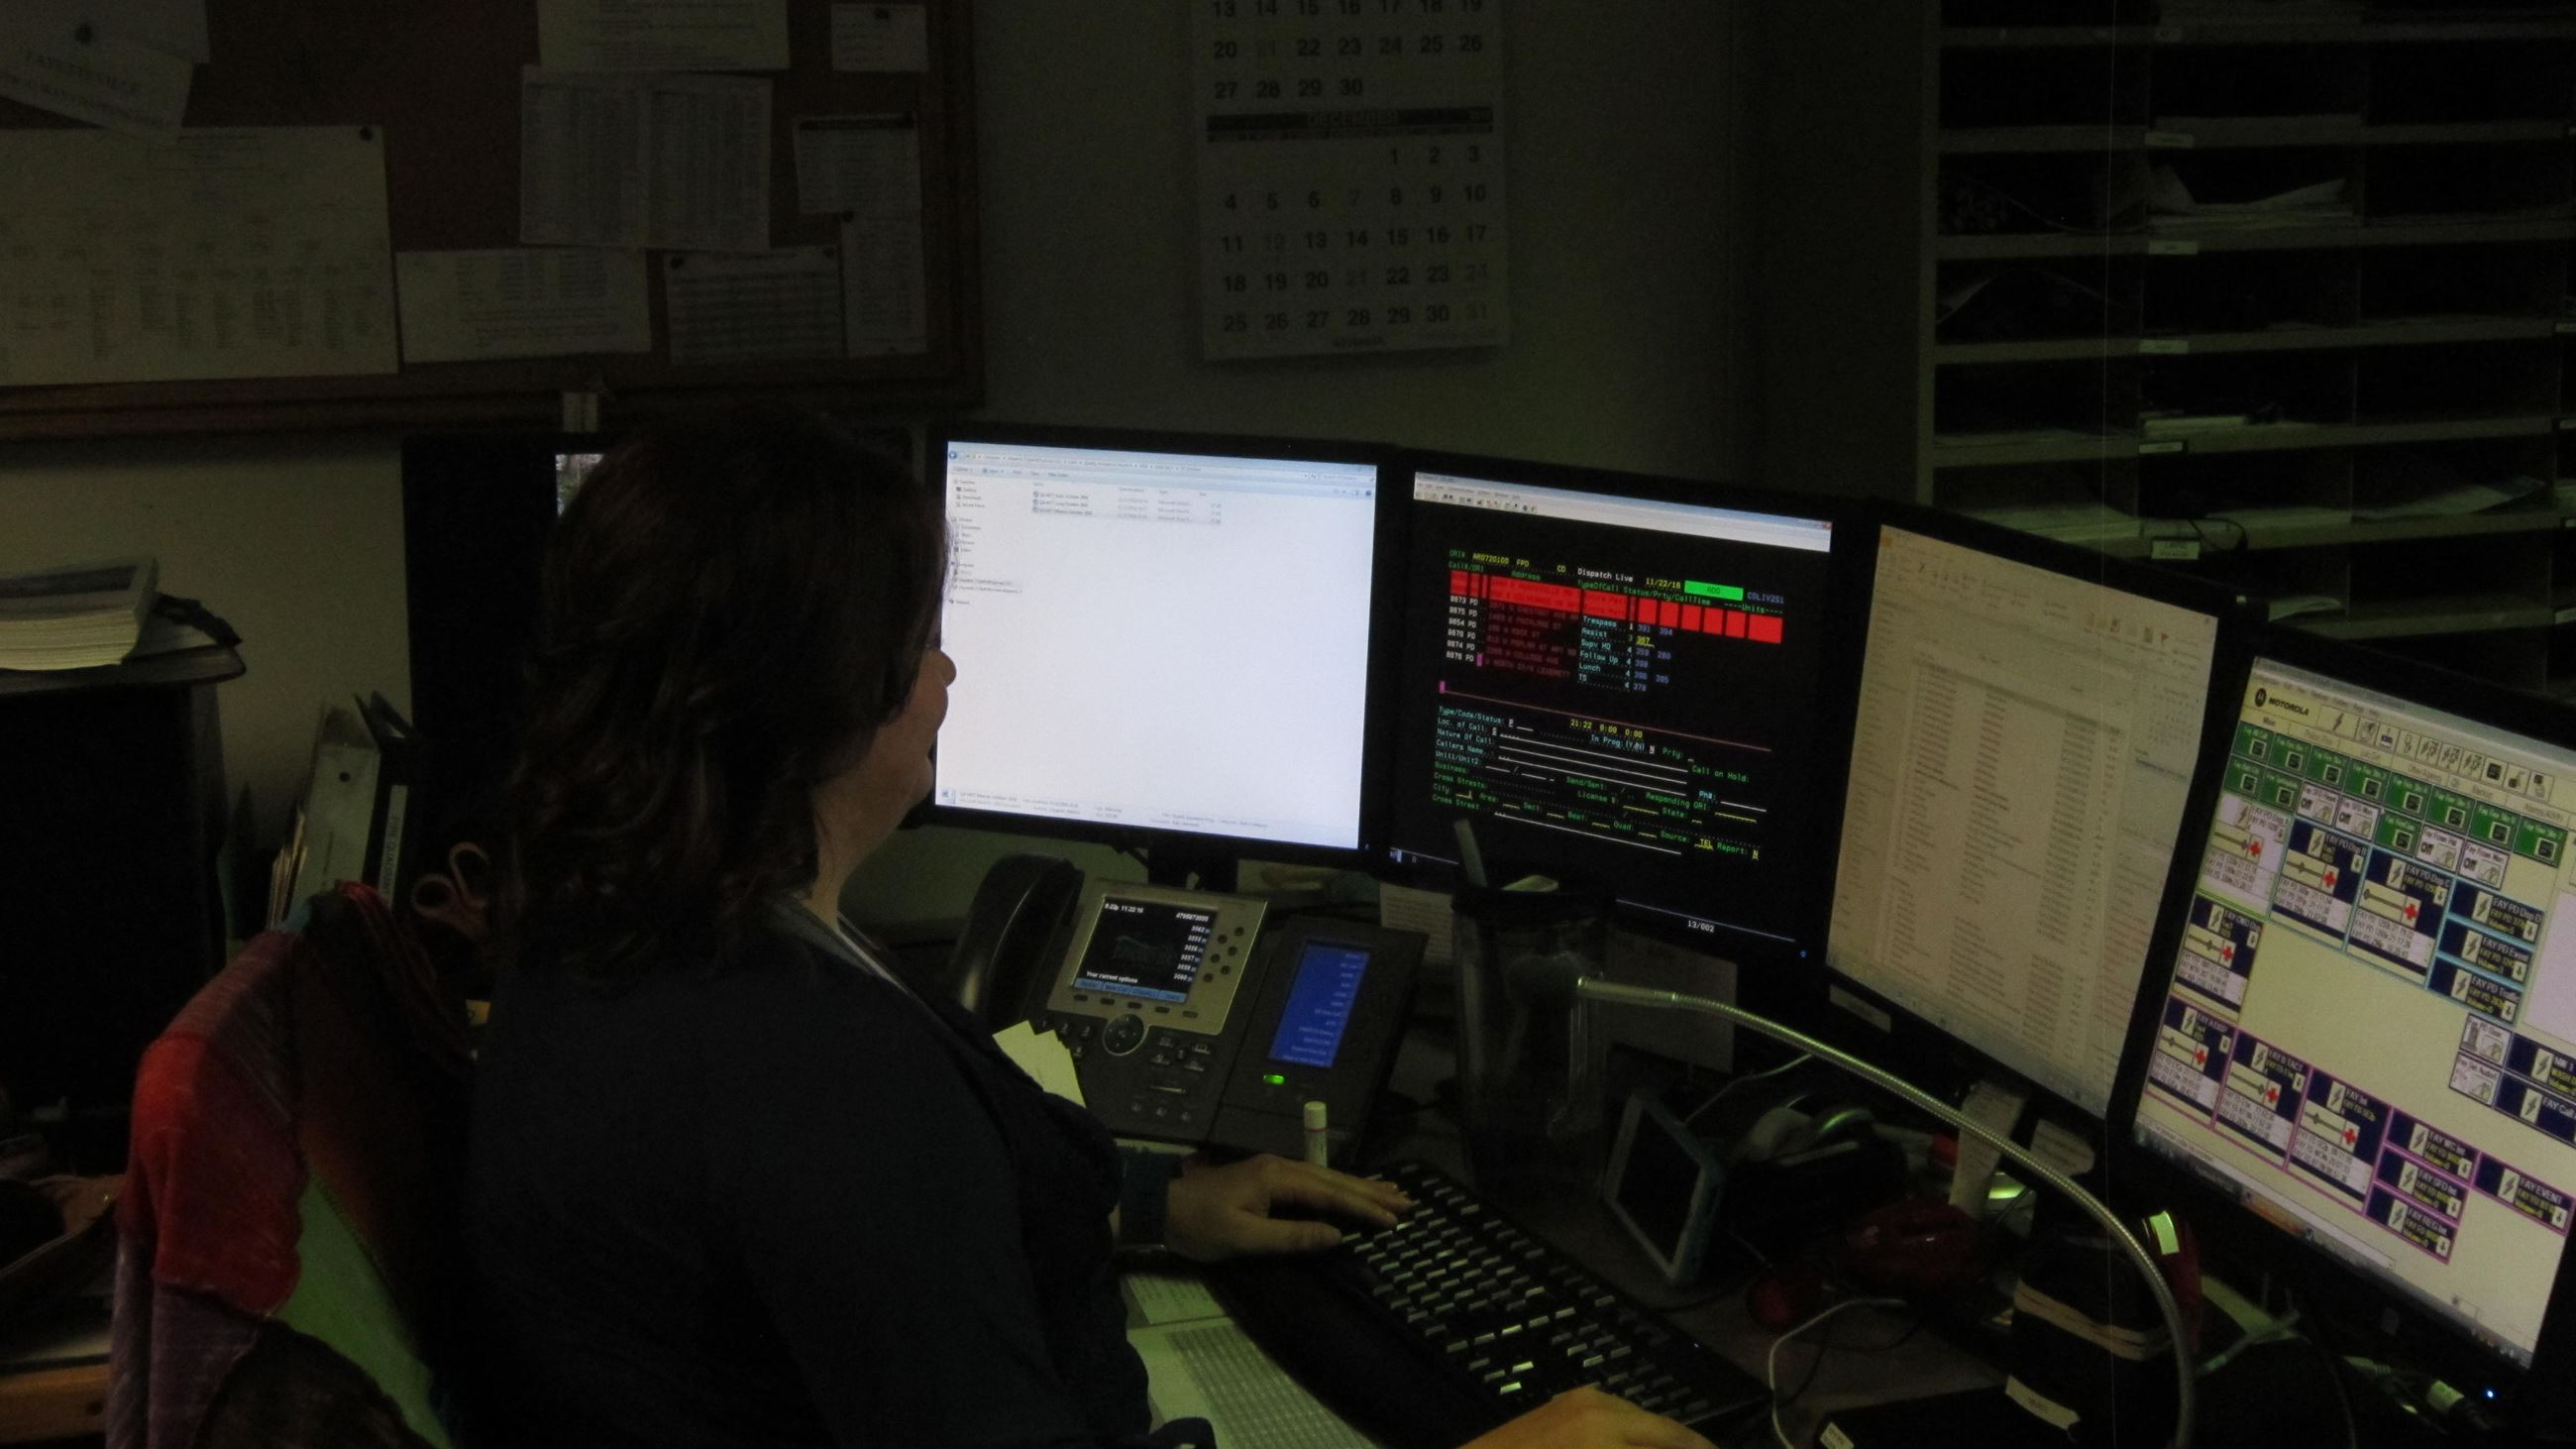 dispatch careers fayetteville ar official website dispatcher 5 dispatcher 1